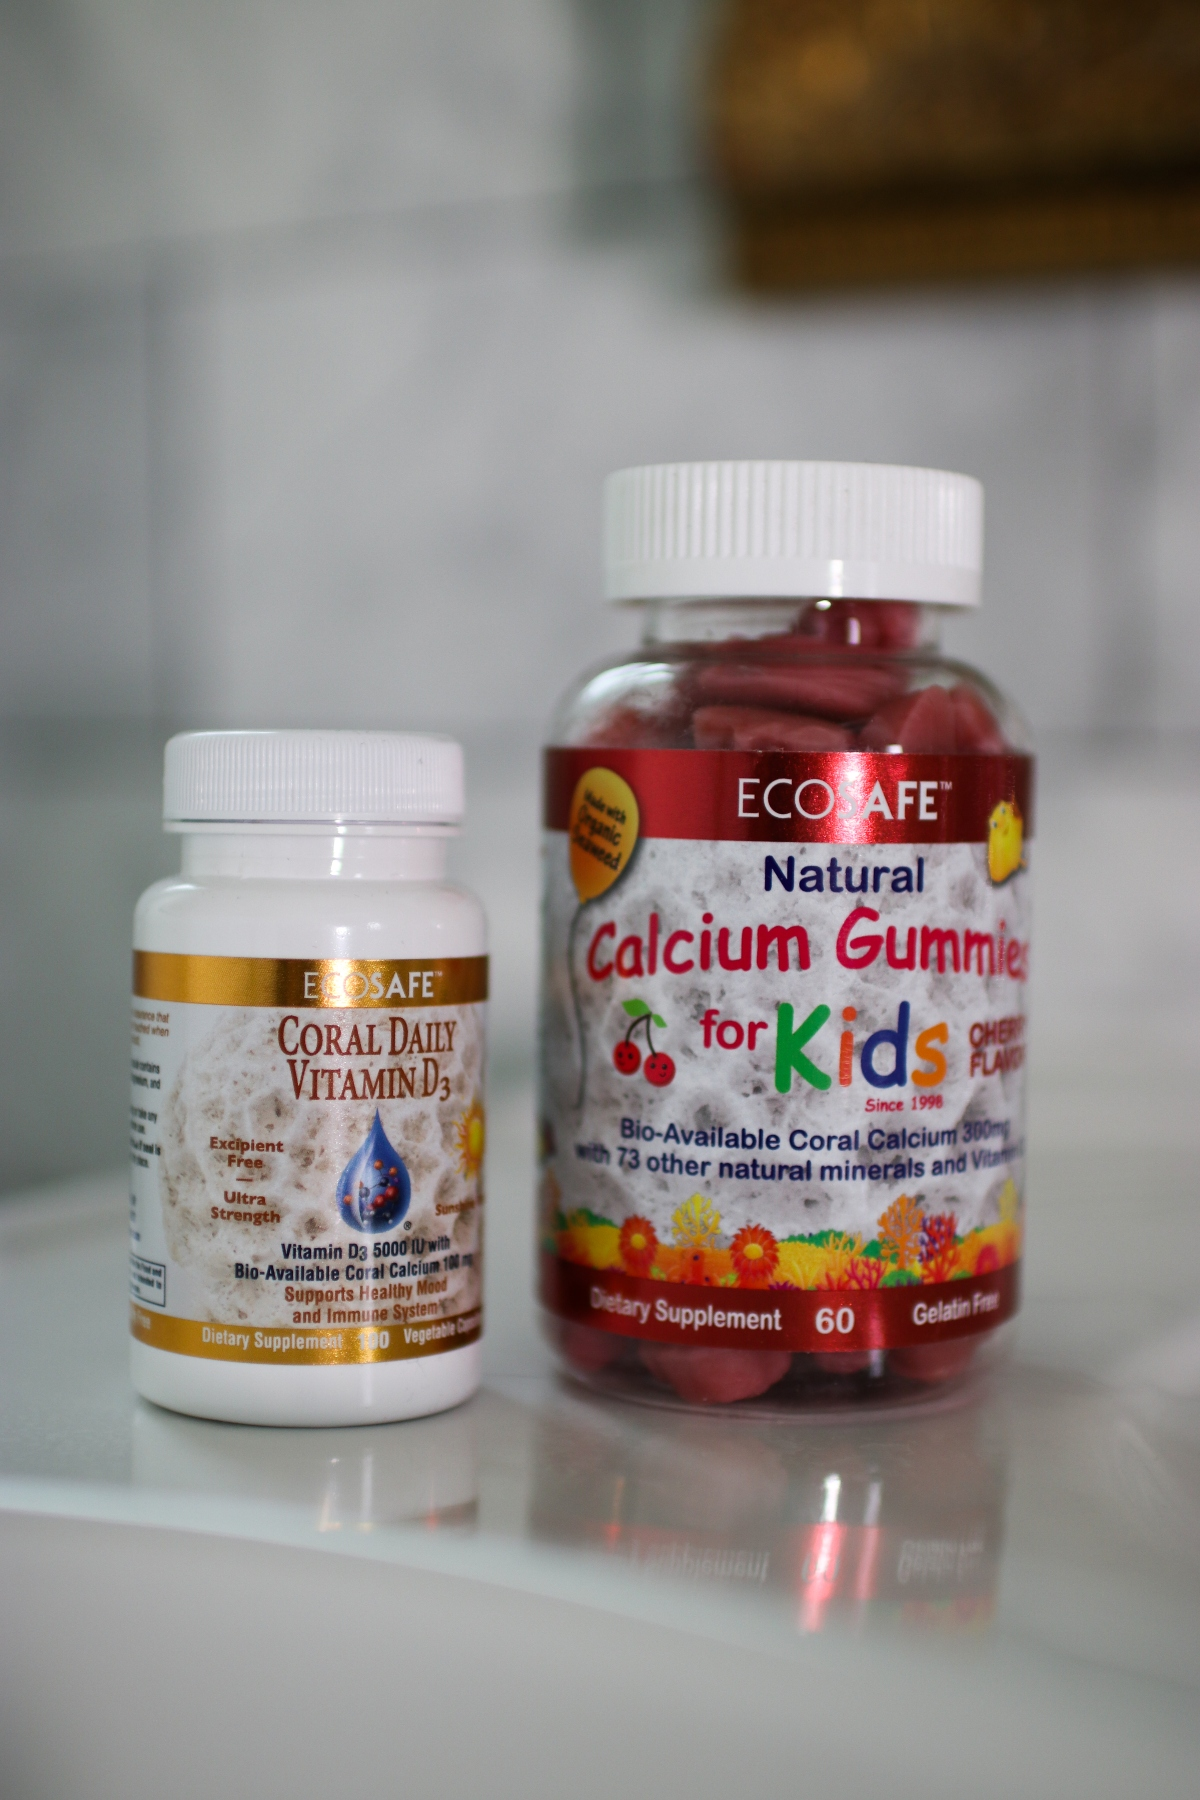 Coral Daily Vitamin D3 Vitamins and ECOSAFE Natural Calcium Gummies for Kids